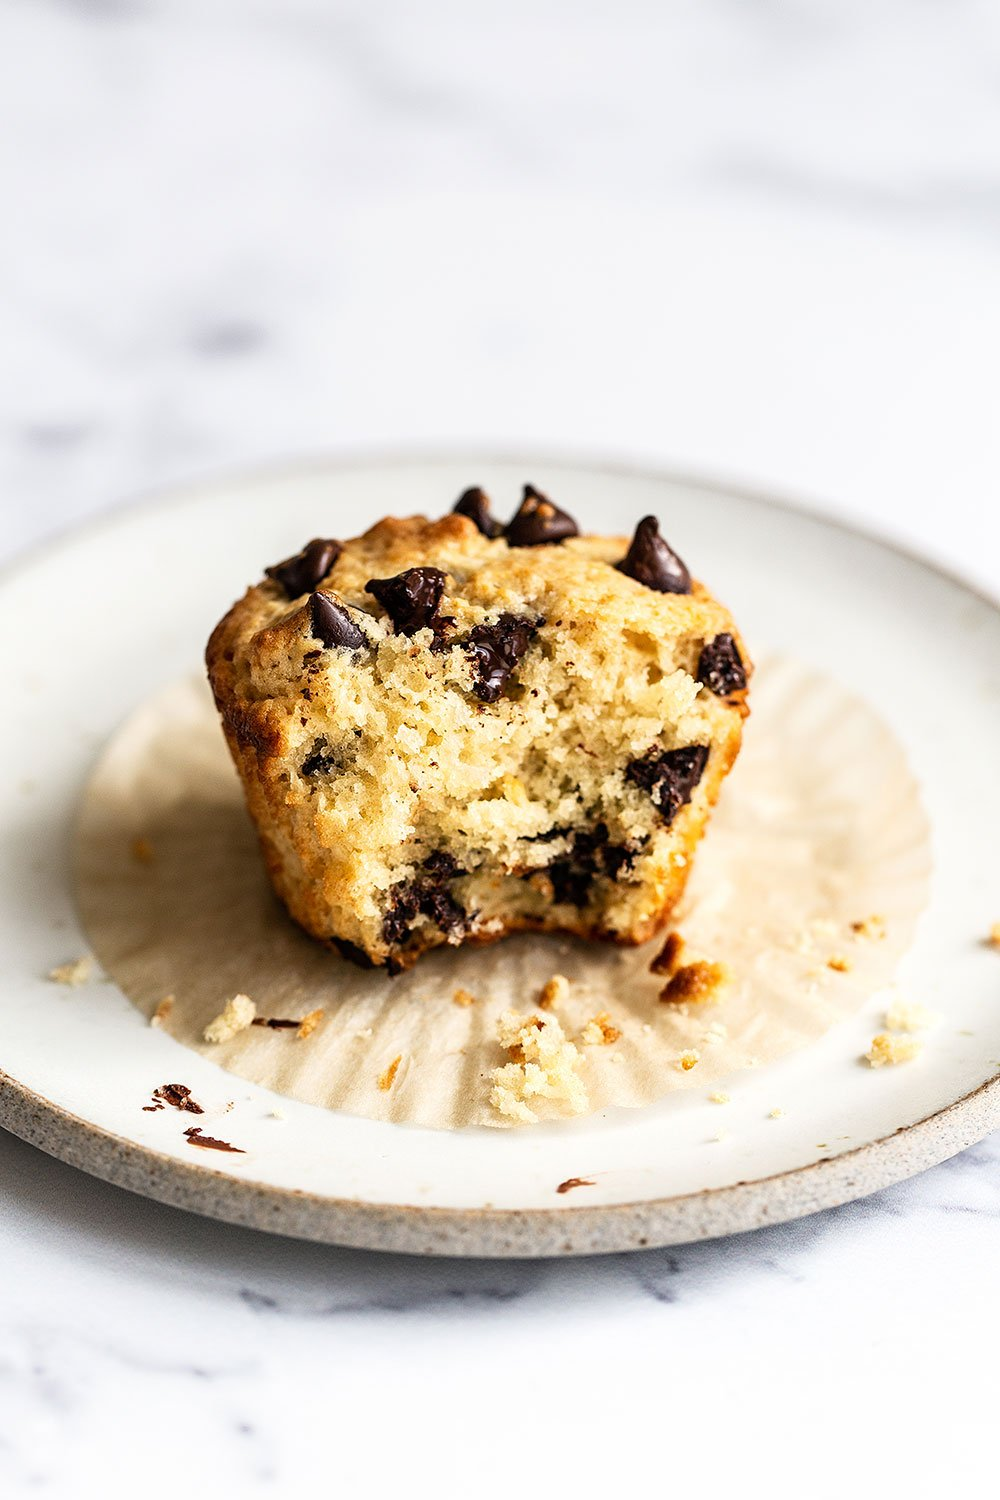 Chocolate chip muffin on a plate with a bite taken out with gooey chocolate inside